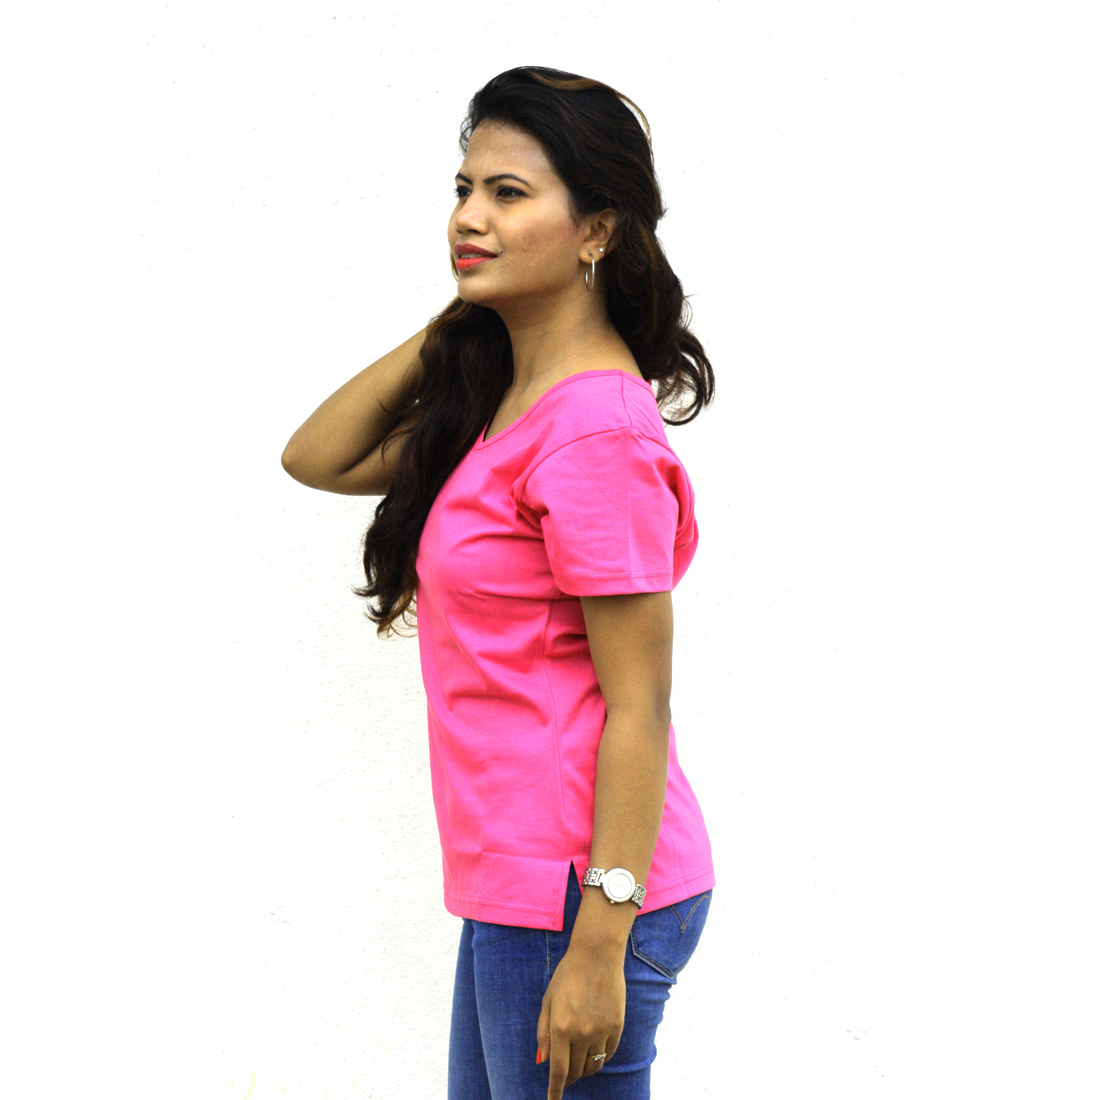 Wiluminaty Organic Cotton V-neck Tshirt - Dark Pink (Extra Large)